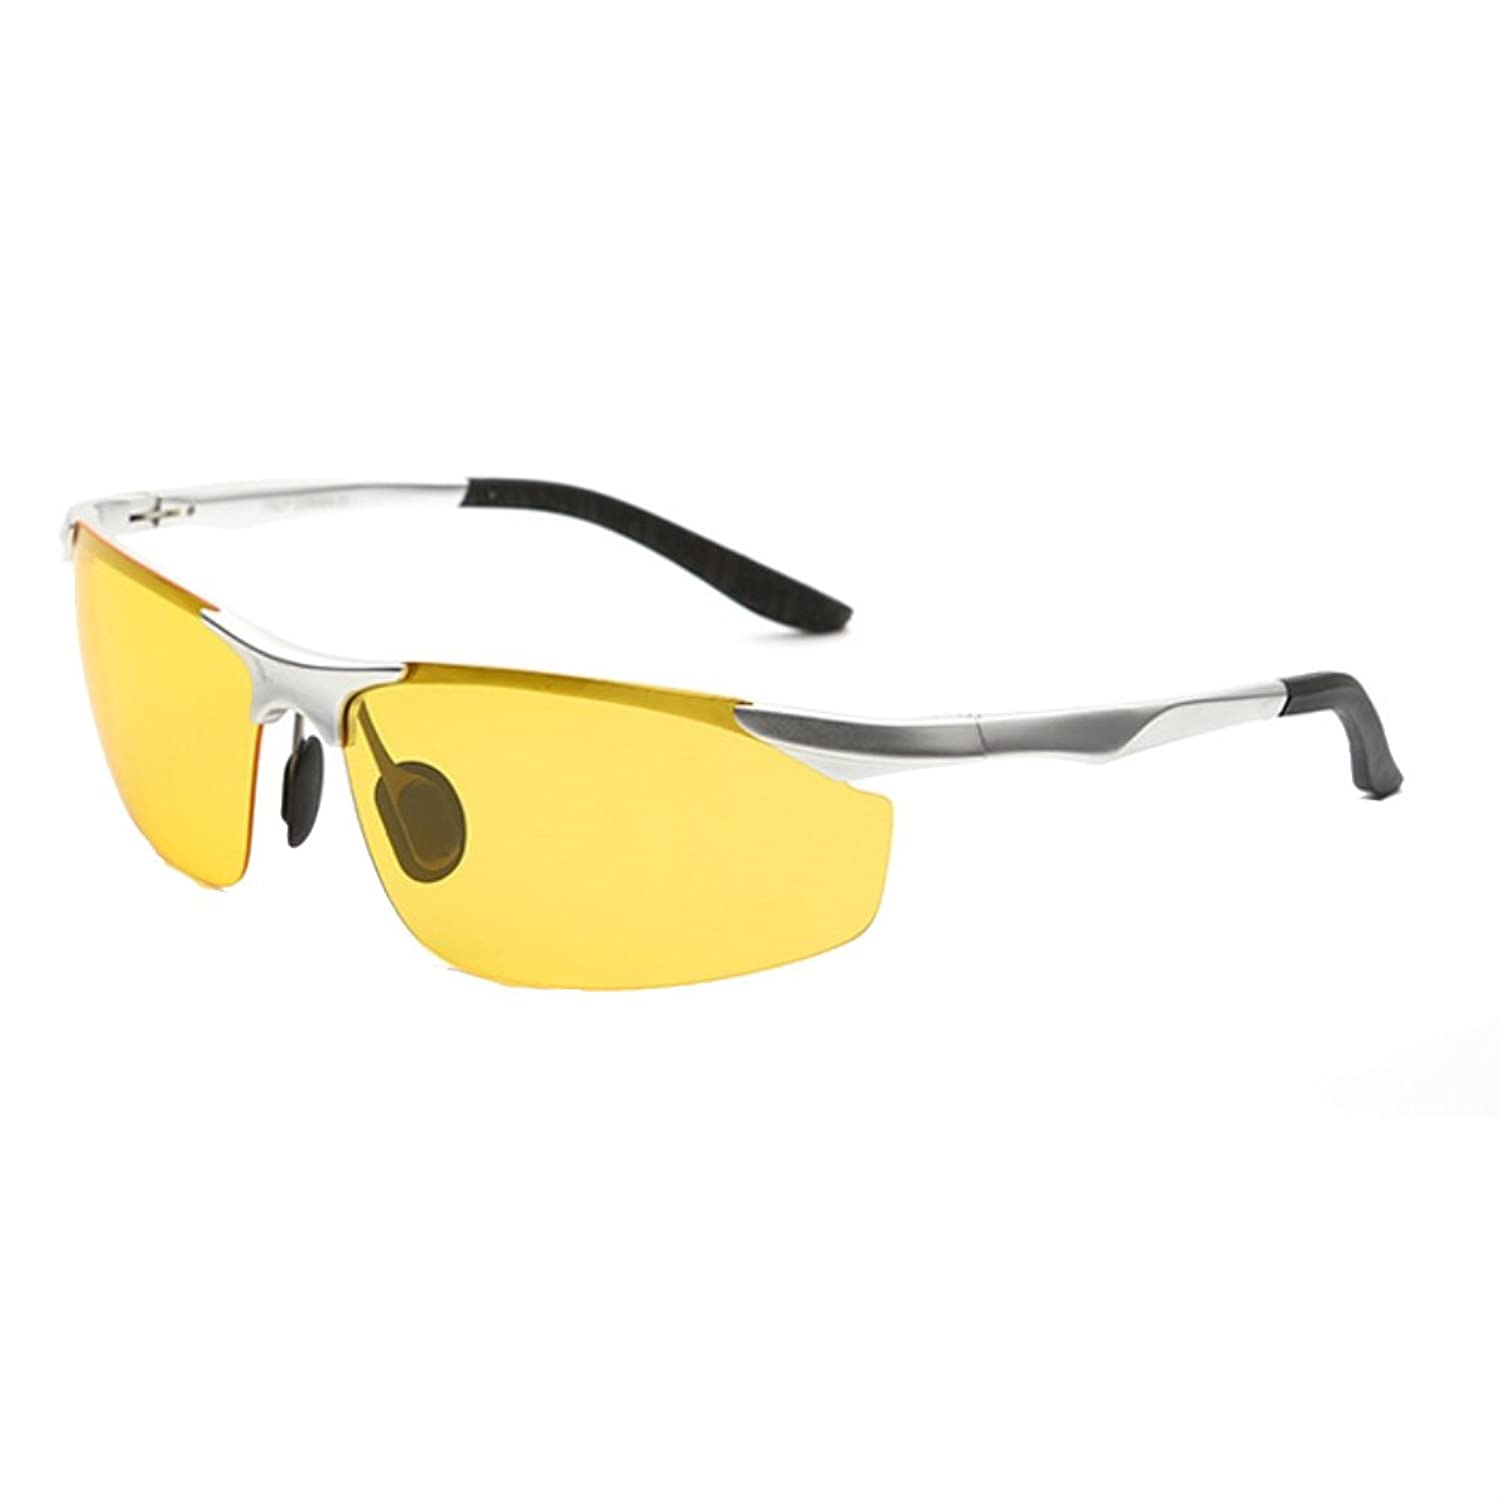 LENSTAR DSG800015 Explosion Models TAC Lens Movement Al-Mg Frames Sunglasses